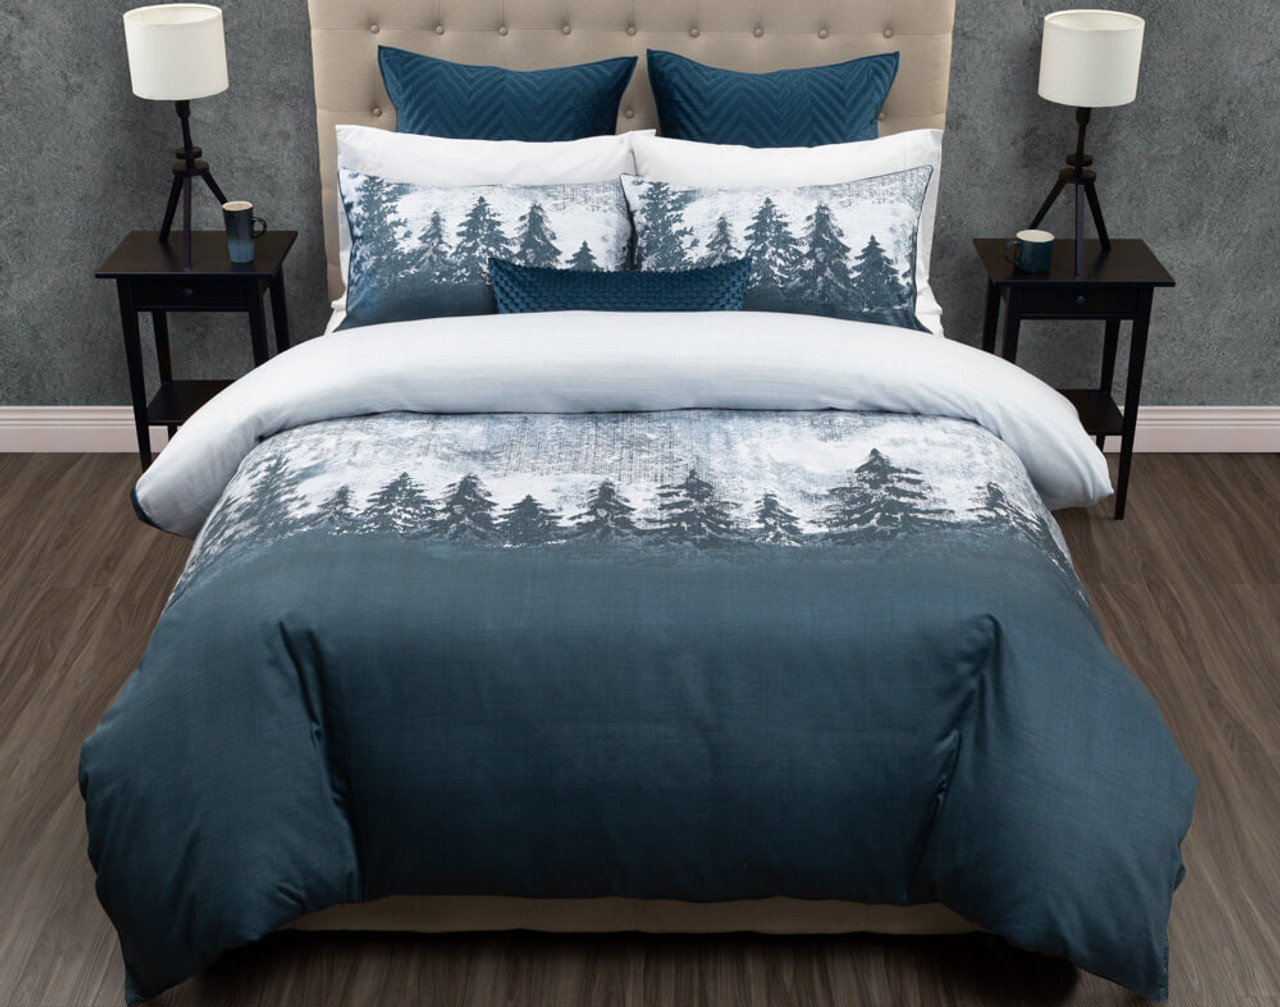 Front view of our Alps Duvet Cover and Pillow Shams, featuring a dark and snowy forest design.